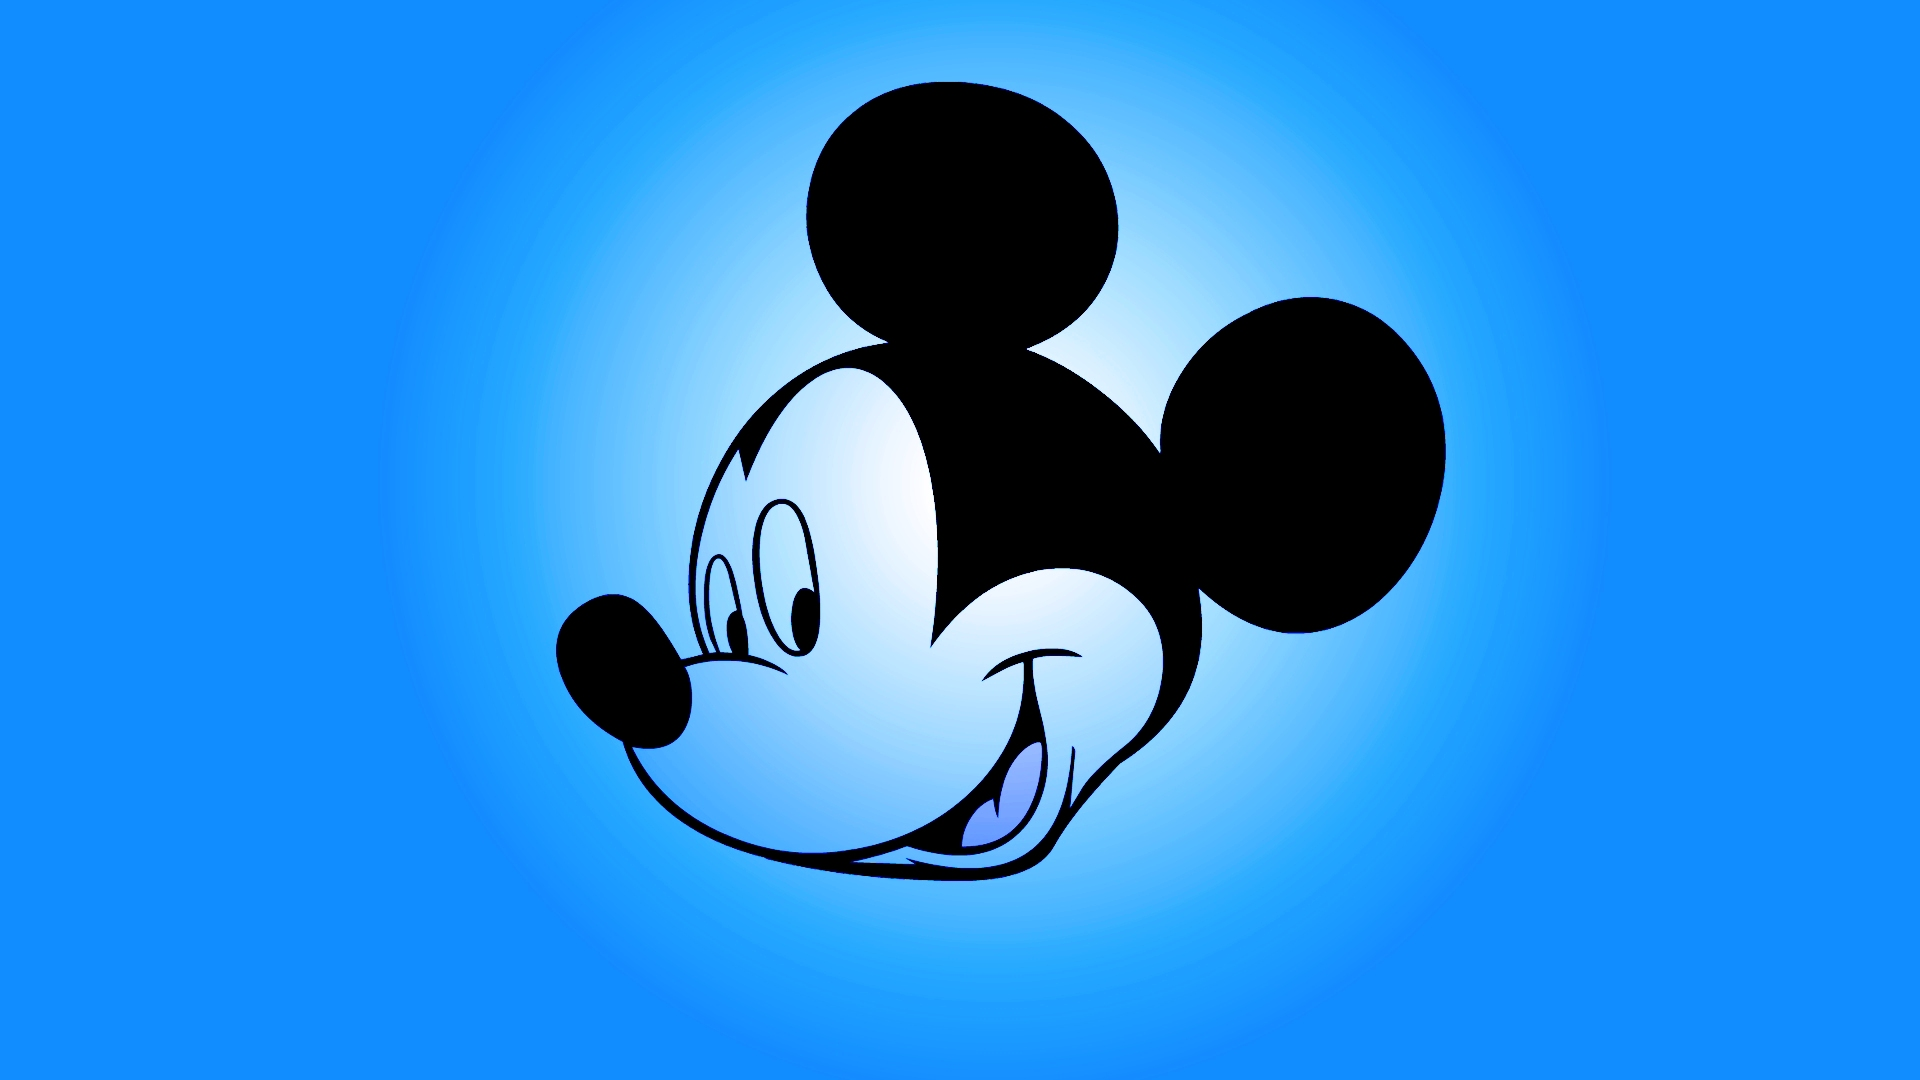 Mickey mouse and minnie mouse wallpaper 1920x1080 biocorpaavc